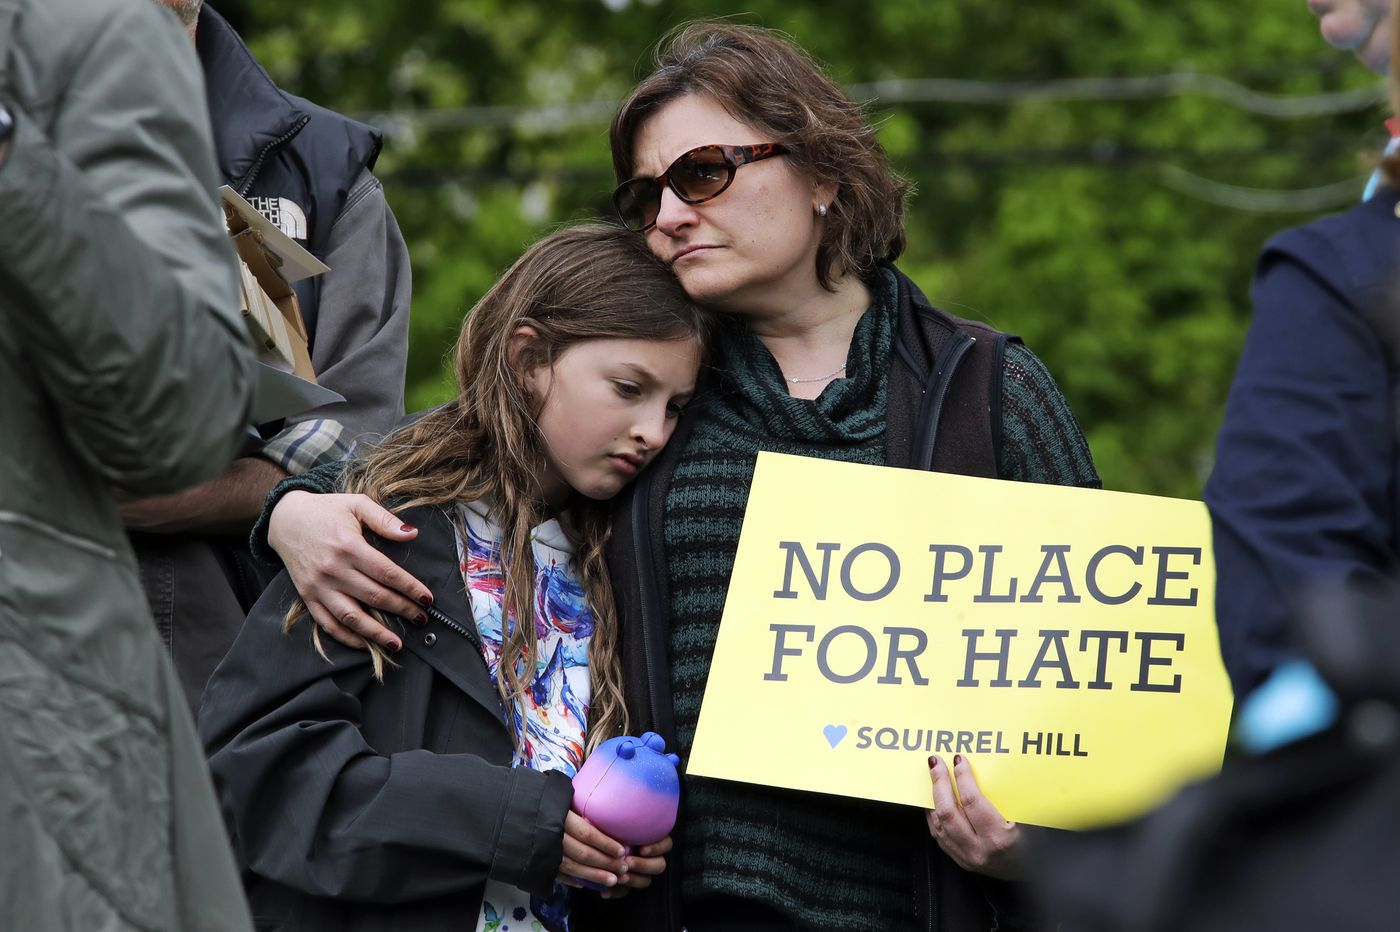 Anti-Semitic incidents down in Pa. and N.J., but assaults up nationally, ADL report says